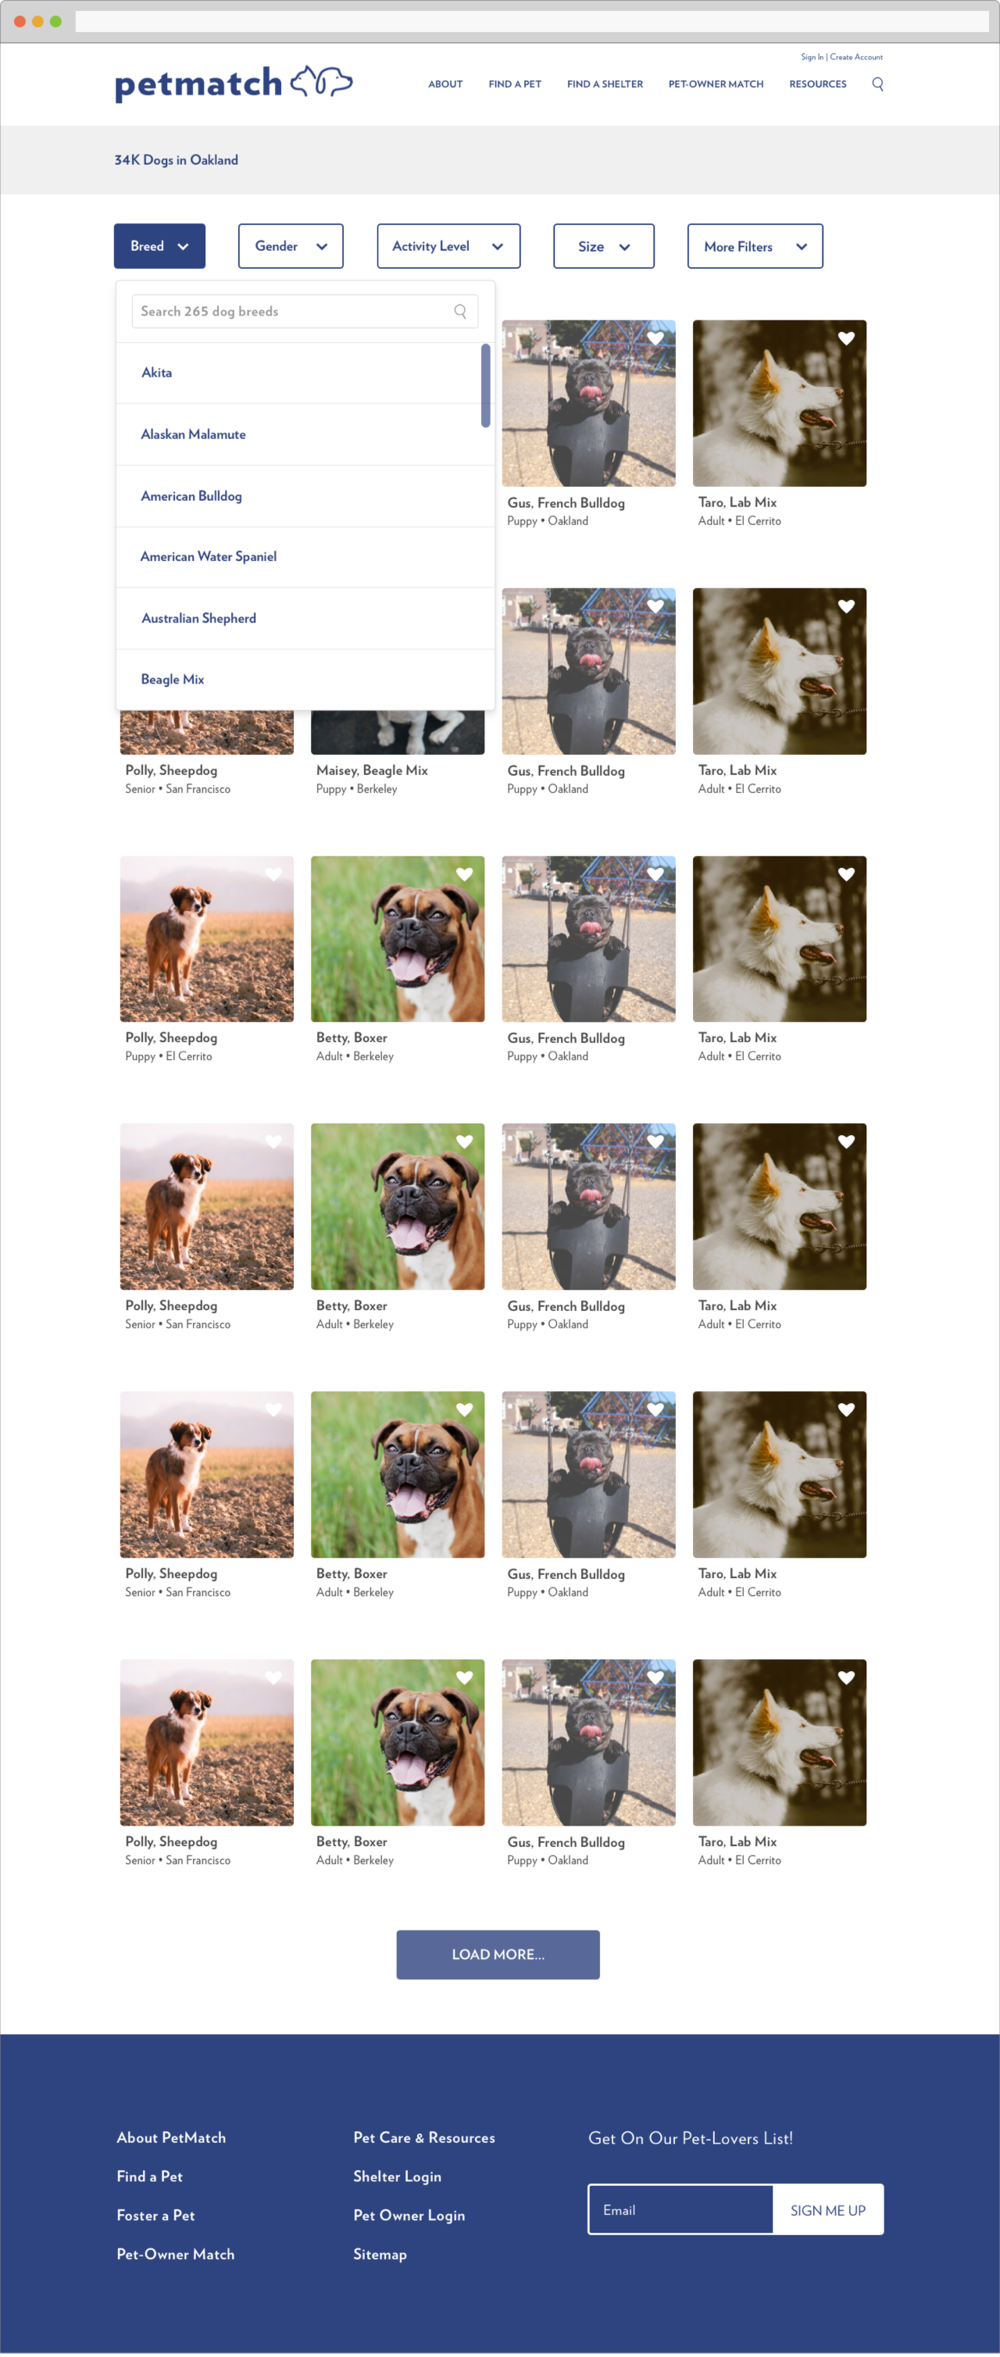 PET SEARCH PAGE  - Users can search through pets in their area using filters including breed, activity level, gender, and more.